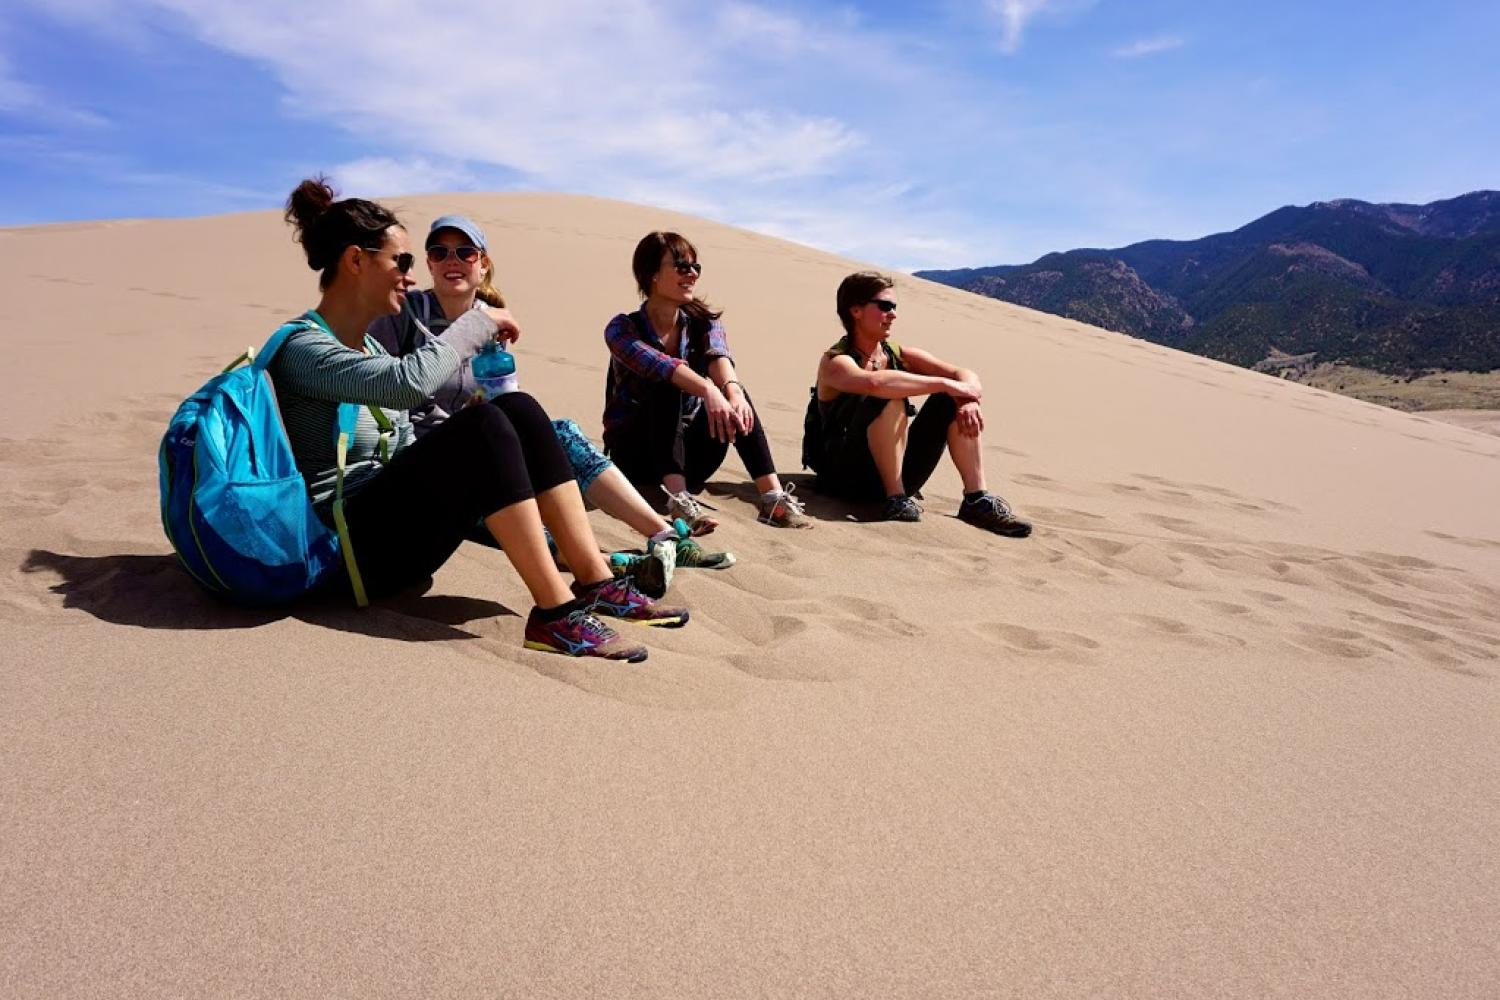 Students in the field on sand dunes